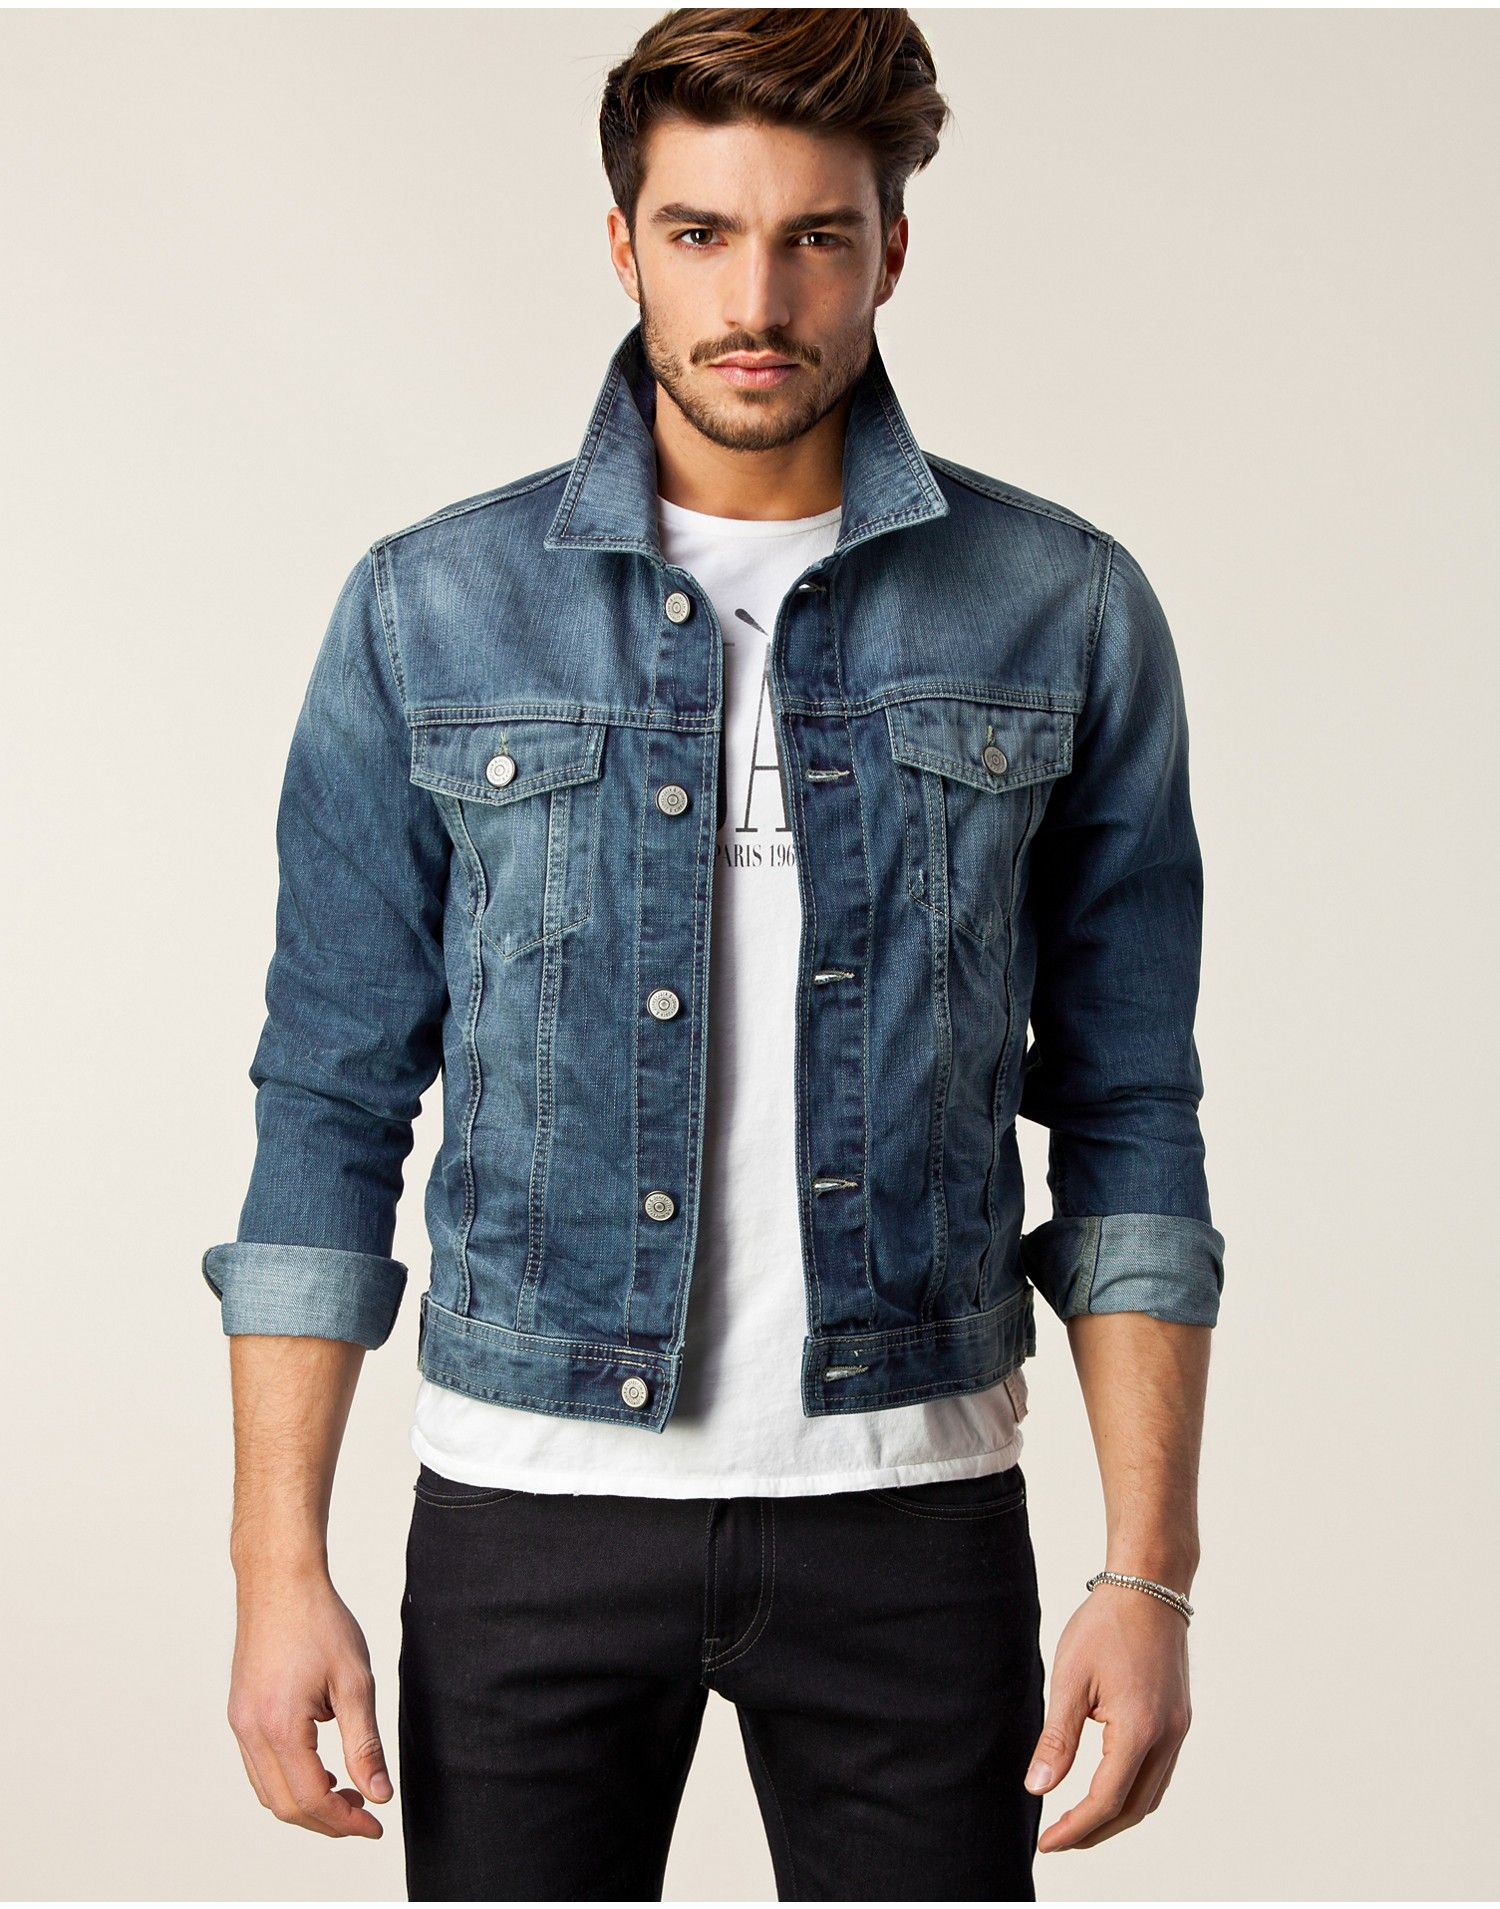 17 Best images about Denim Jacket Ideas on Pinterest | Men's jean ...